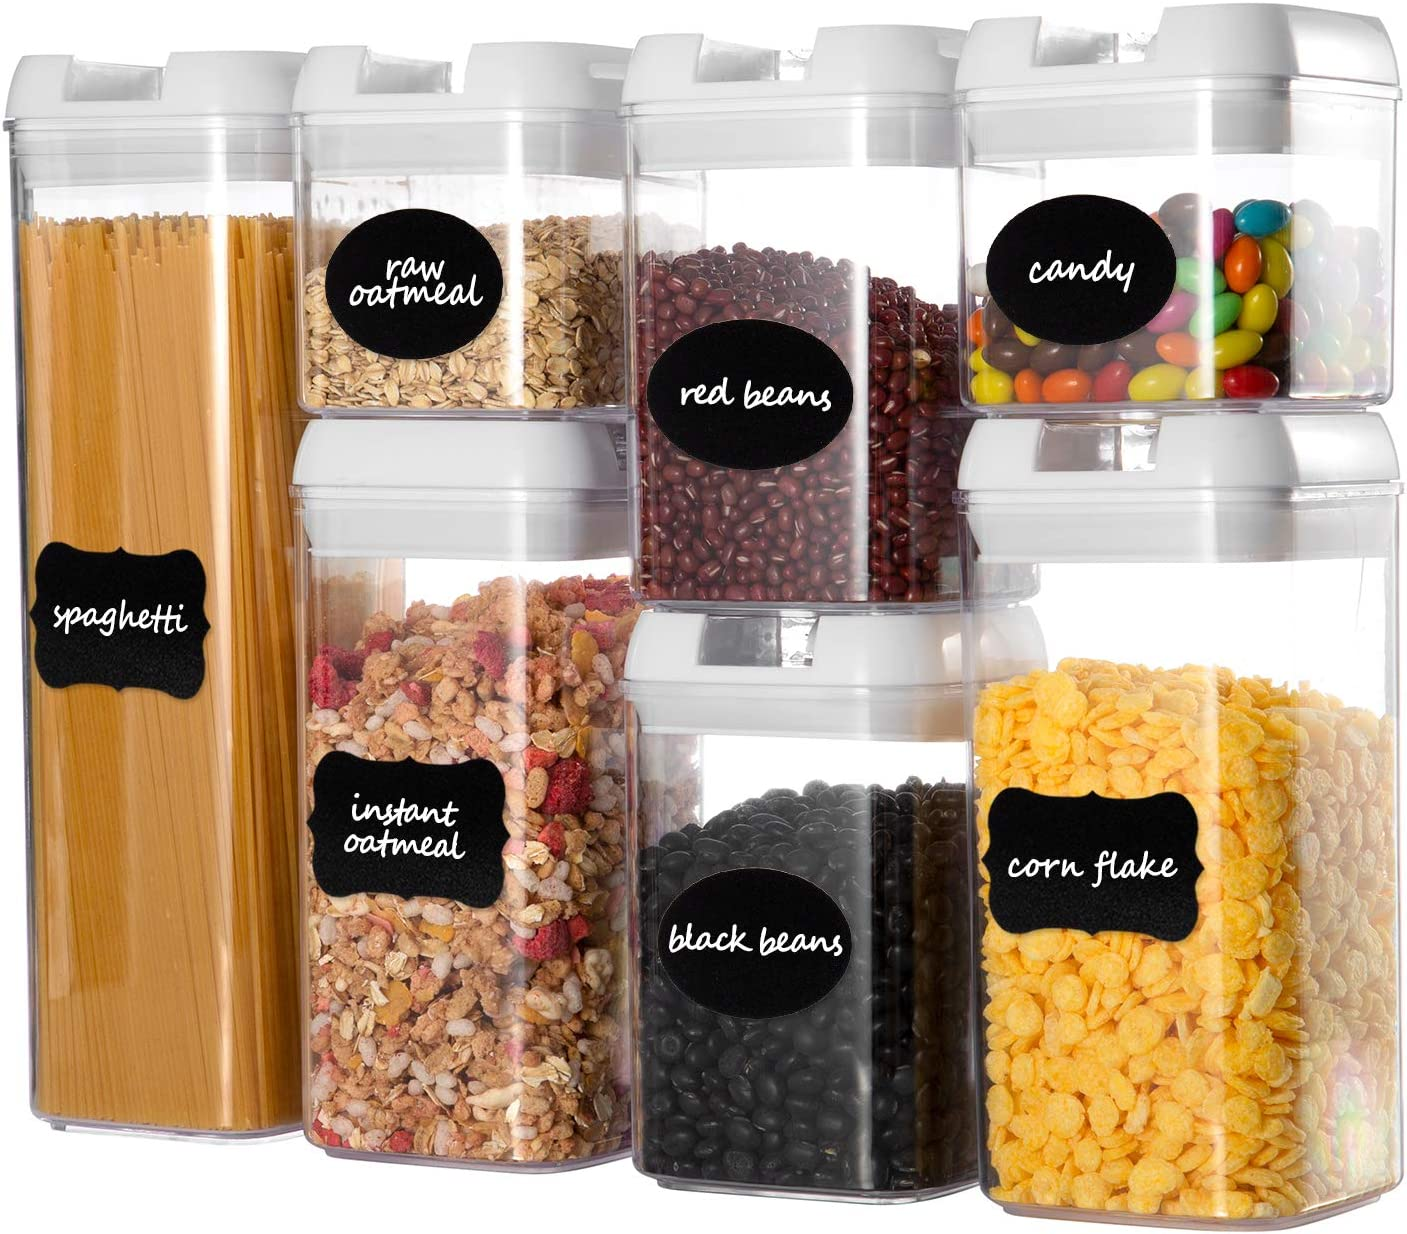 Airtight Food Storage Containers Set, Faite's 7 Pieces BPA Free Kitchen Storage Container with Easy Lock Lids,Plastic Sorage Bins with Durable Lids Ideal for Cereal, Flour & Sugar